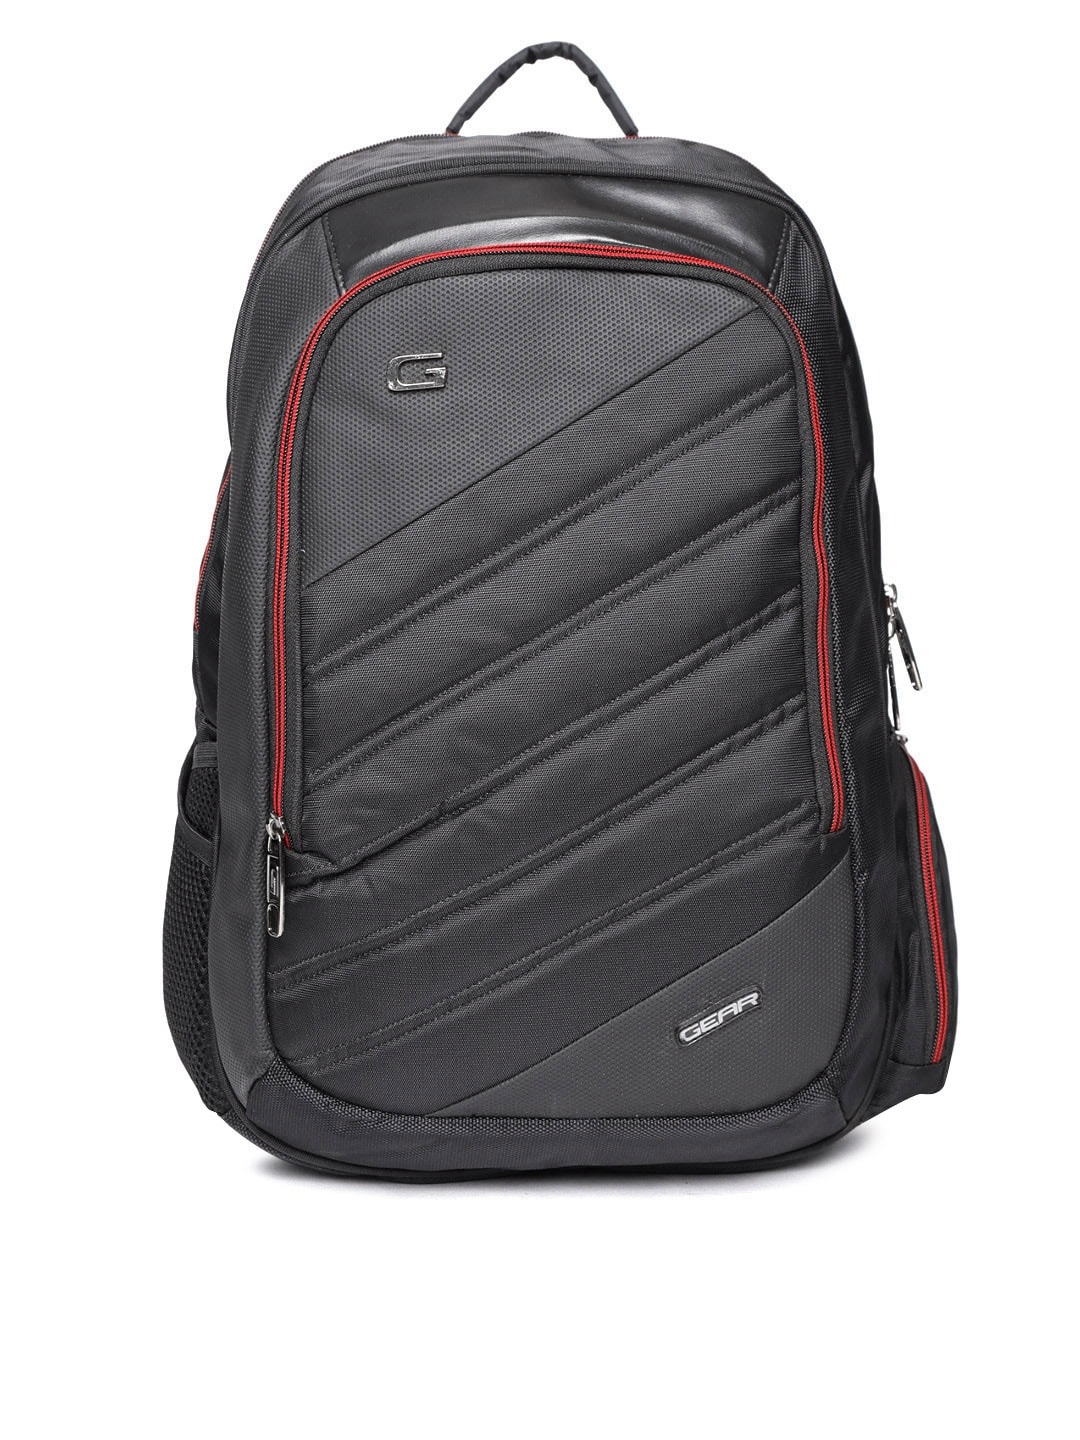 18b71c920542 Swiss Gear Backpacks Online India | Building Materials Bargain Center